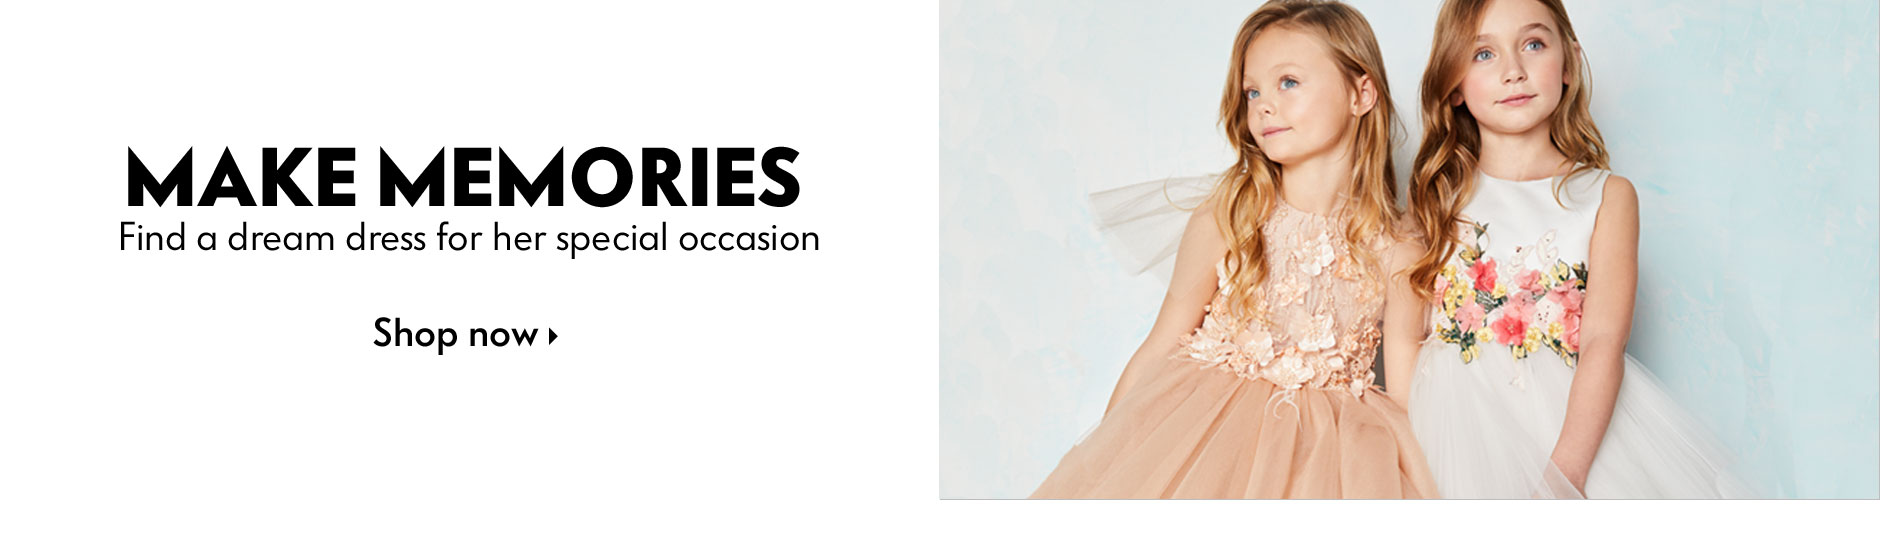 Make Memories - Find a dream dress for her special occasion